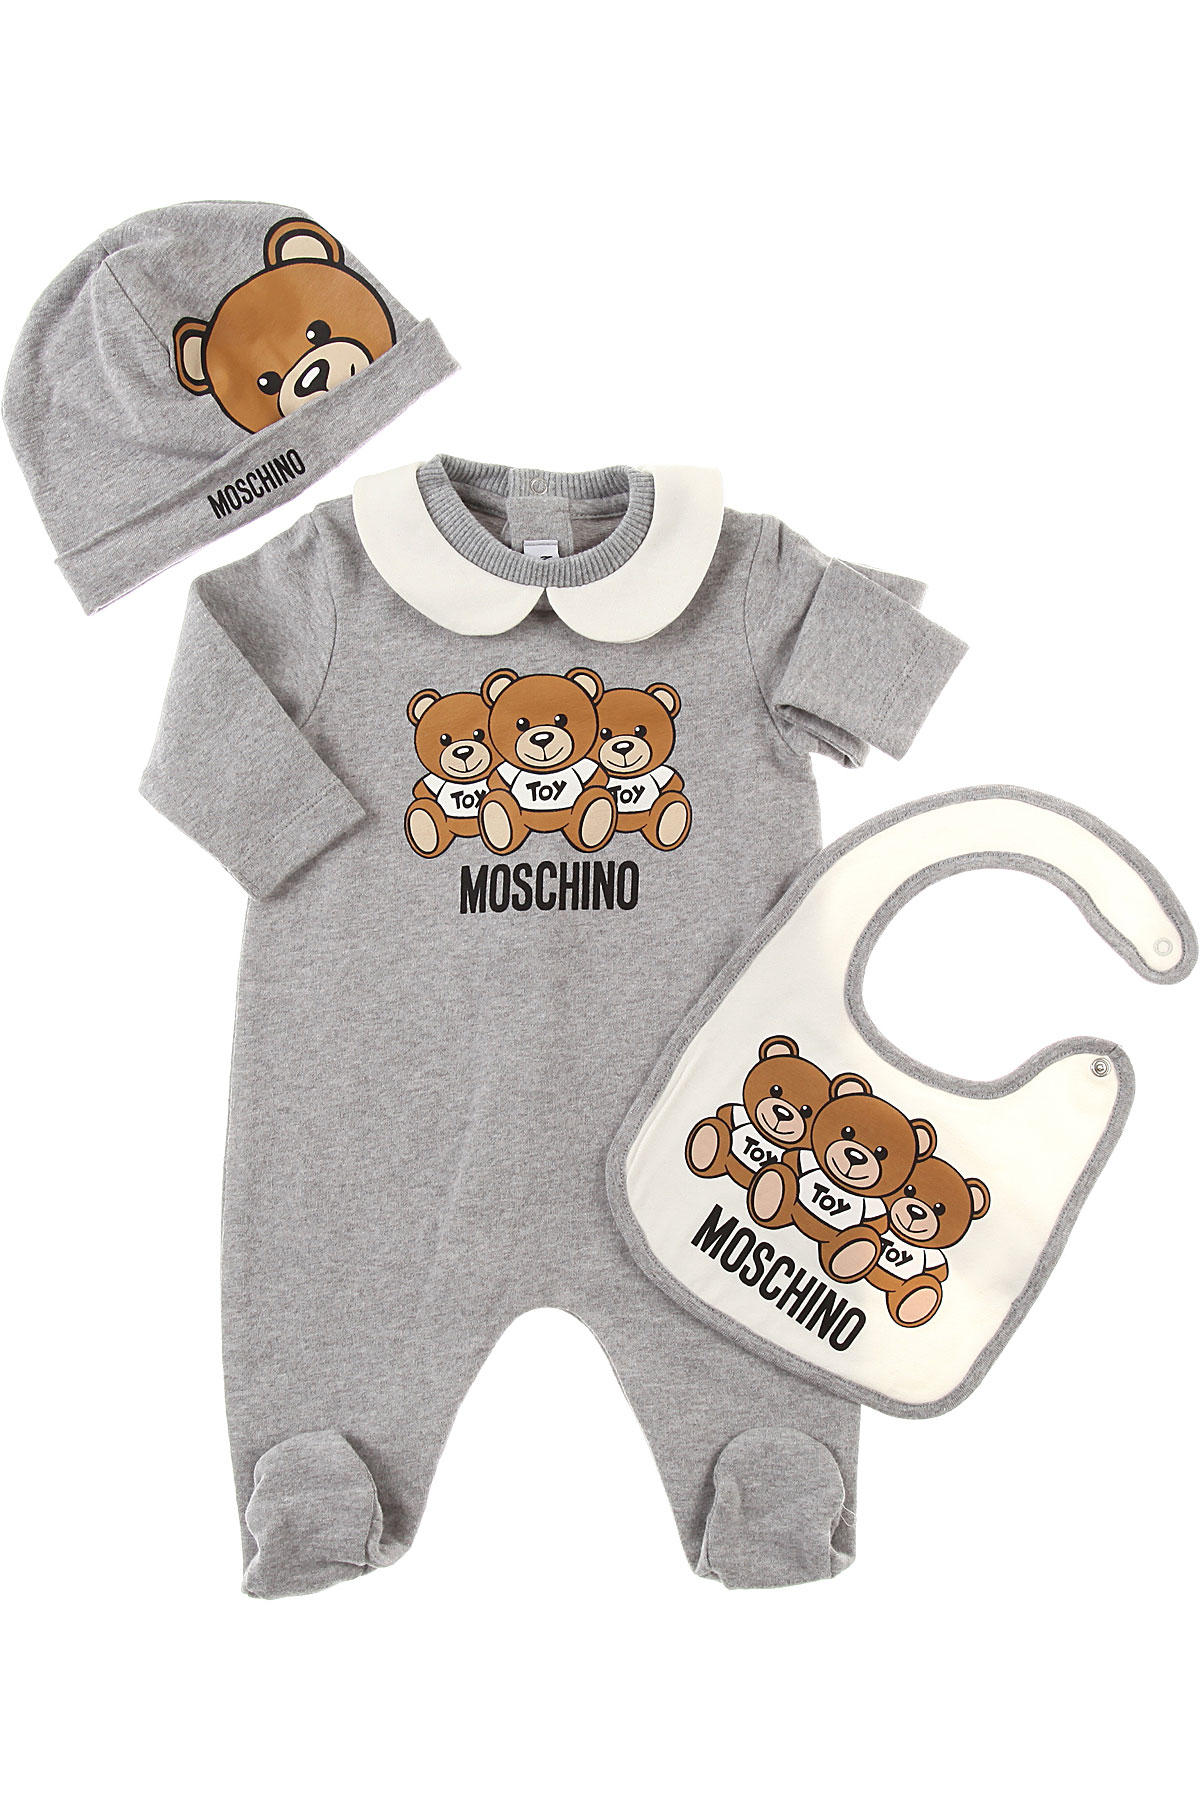 Image of Moschino Baby Bodysuits & Onesies for Girls, Grey, Cotton, 2017, 6M 9M